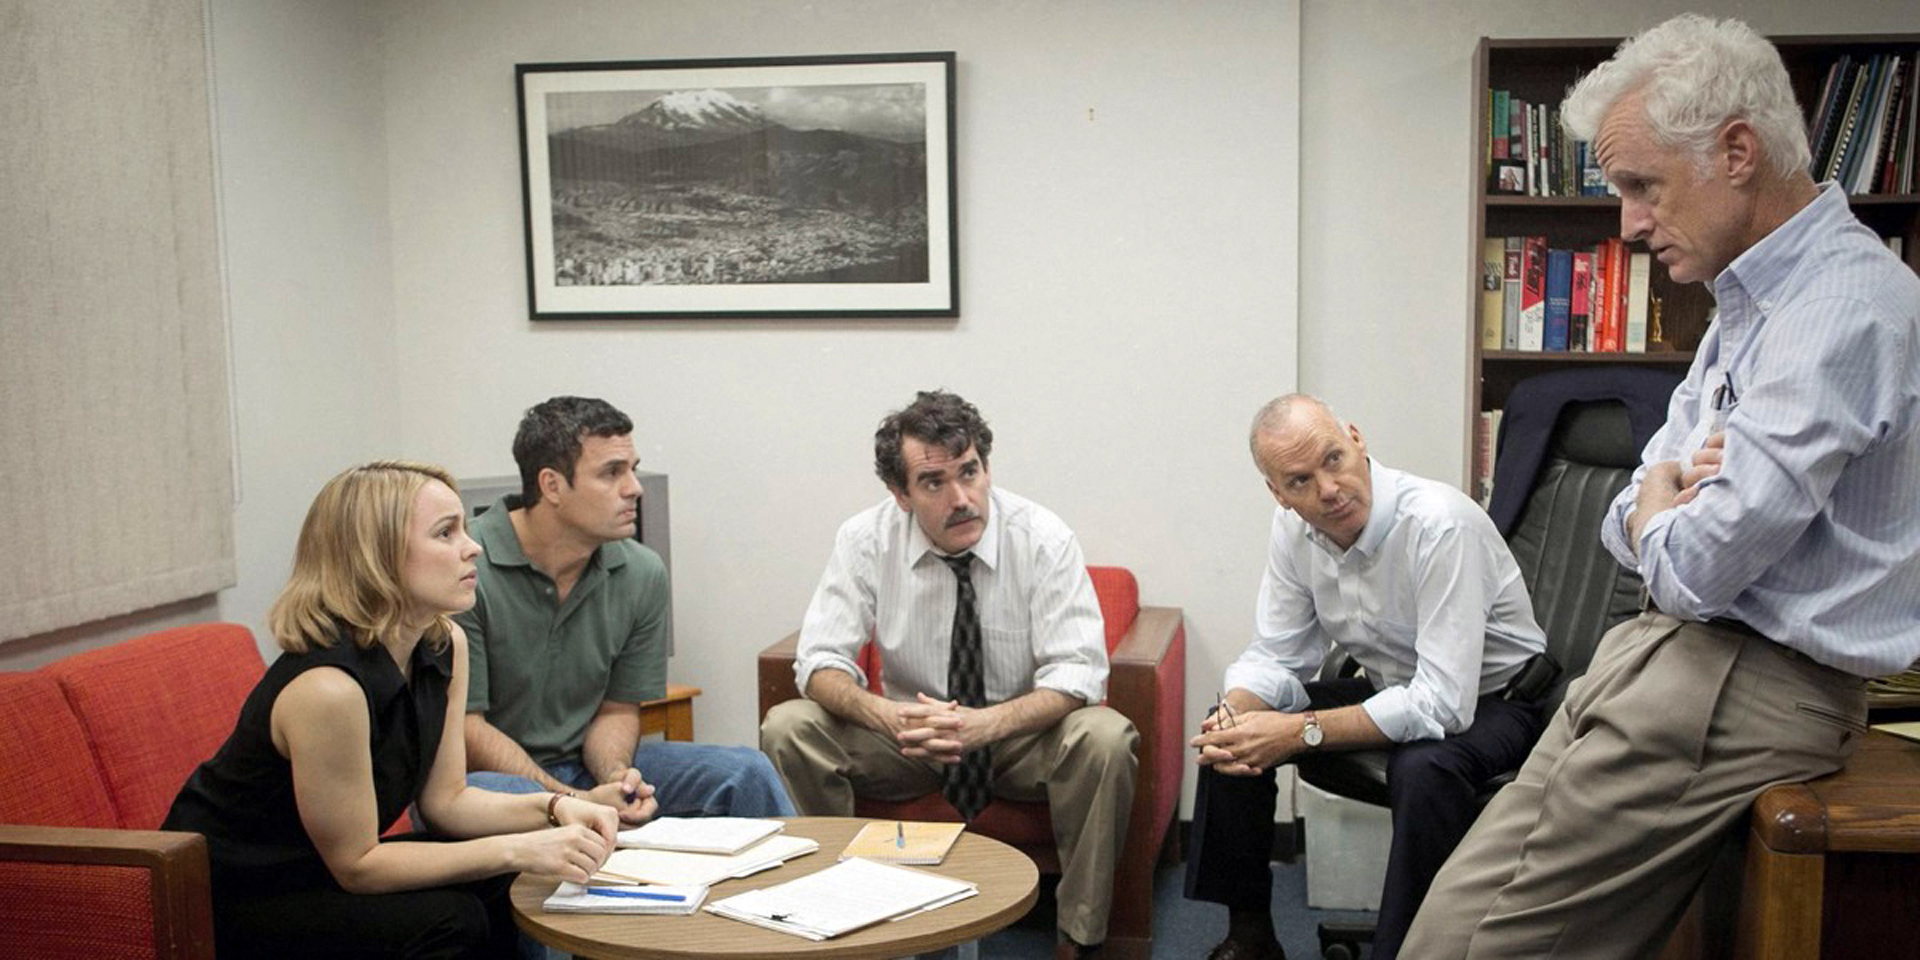 Rachel McAdams, Mark Ruffalo, Brian d'Arcy James, Michael Keaton and John Slattery star in Spotlight.